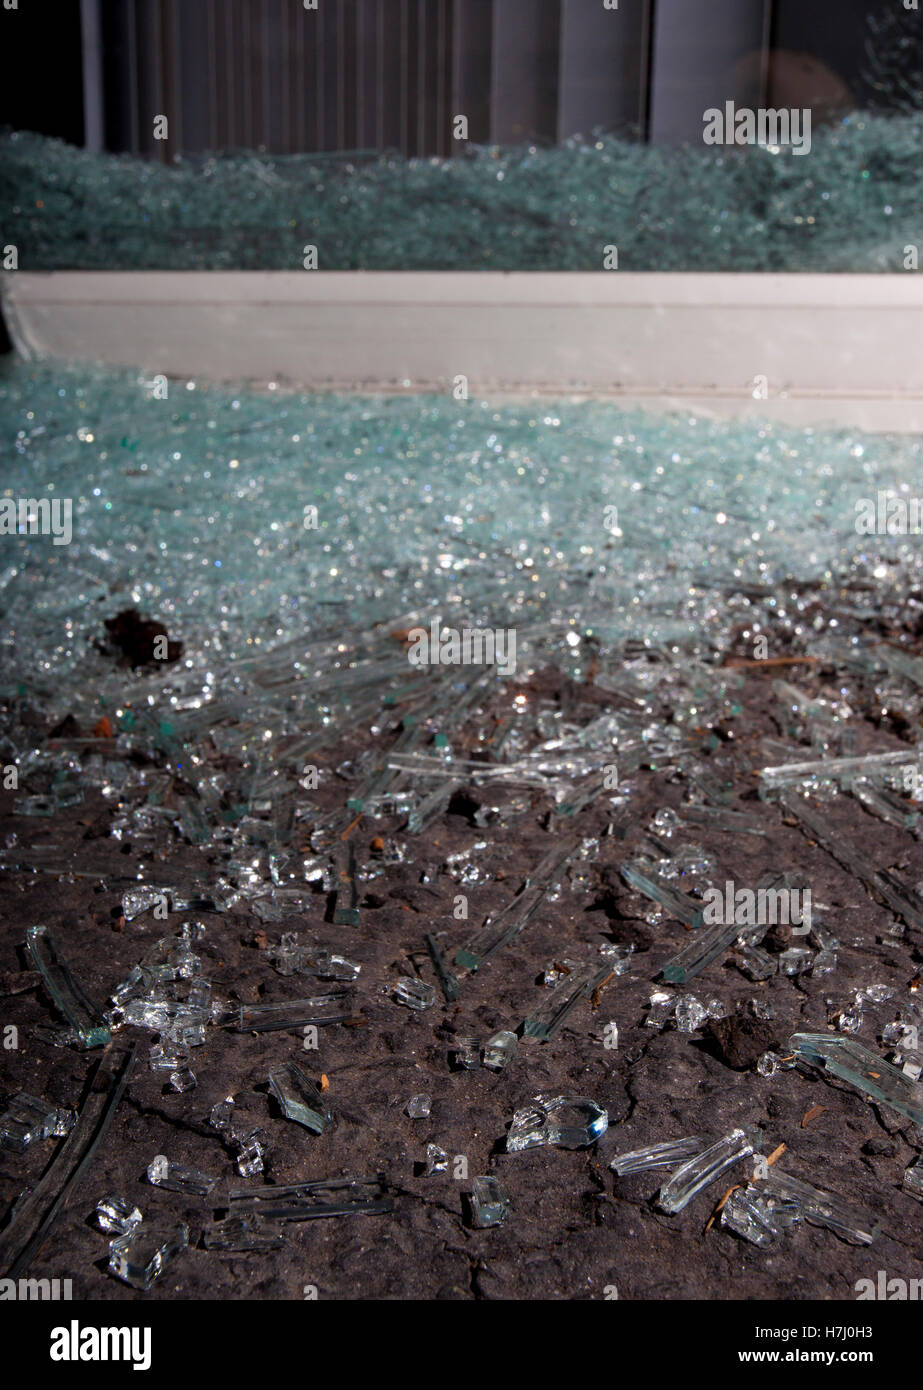 Electrolux oven glass door shattered choice image glass door design electrolux oven glass door shattered gallery glass door design cool sliding glass door glass shattered gallery planetlyrics Gallery